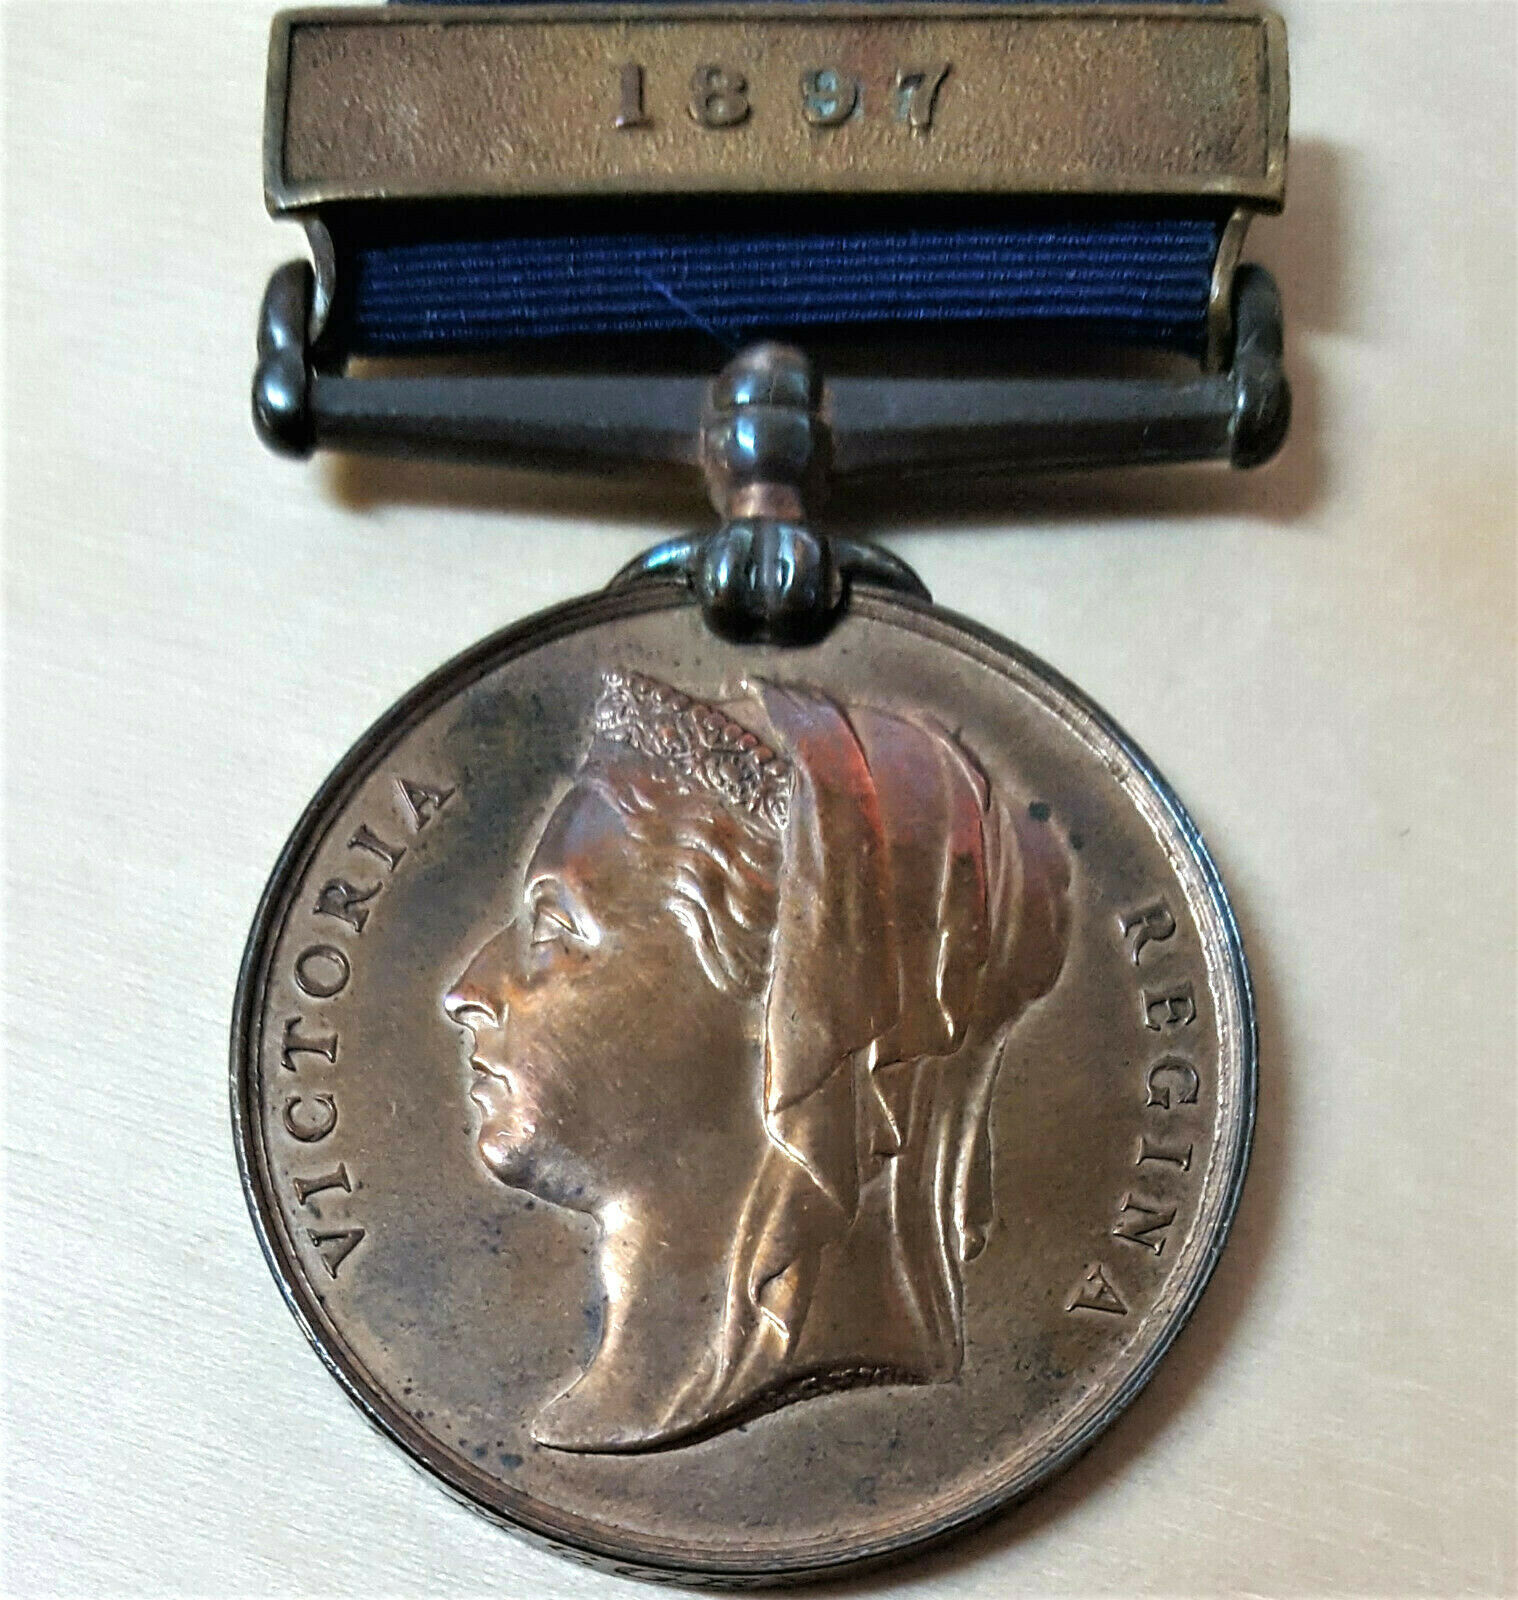 RARE PRE WW1 BRITISH METROPLOITAN POLICE 1887 JUBILEE MEDAL WITH 1897 CLASP